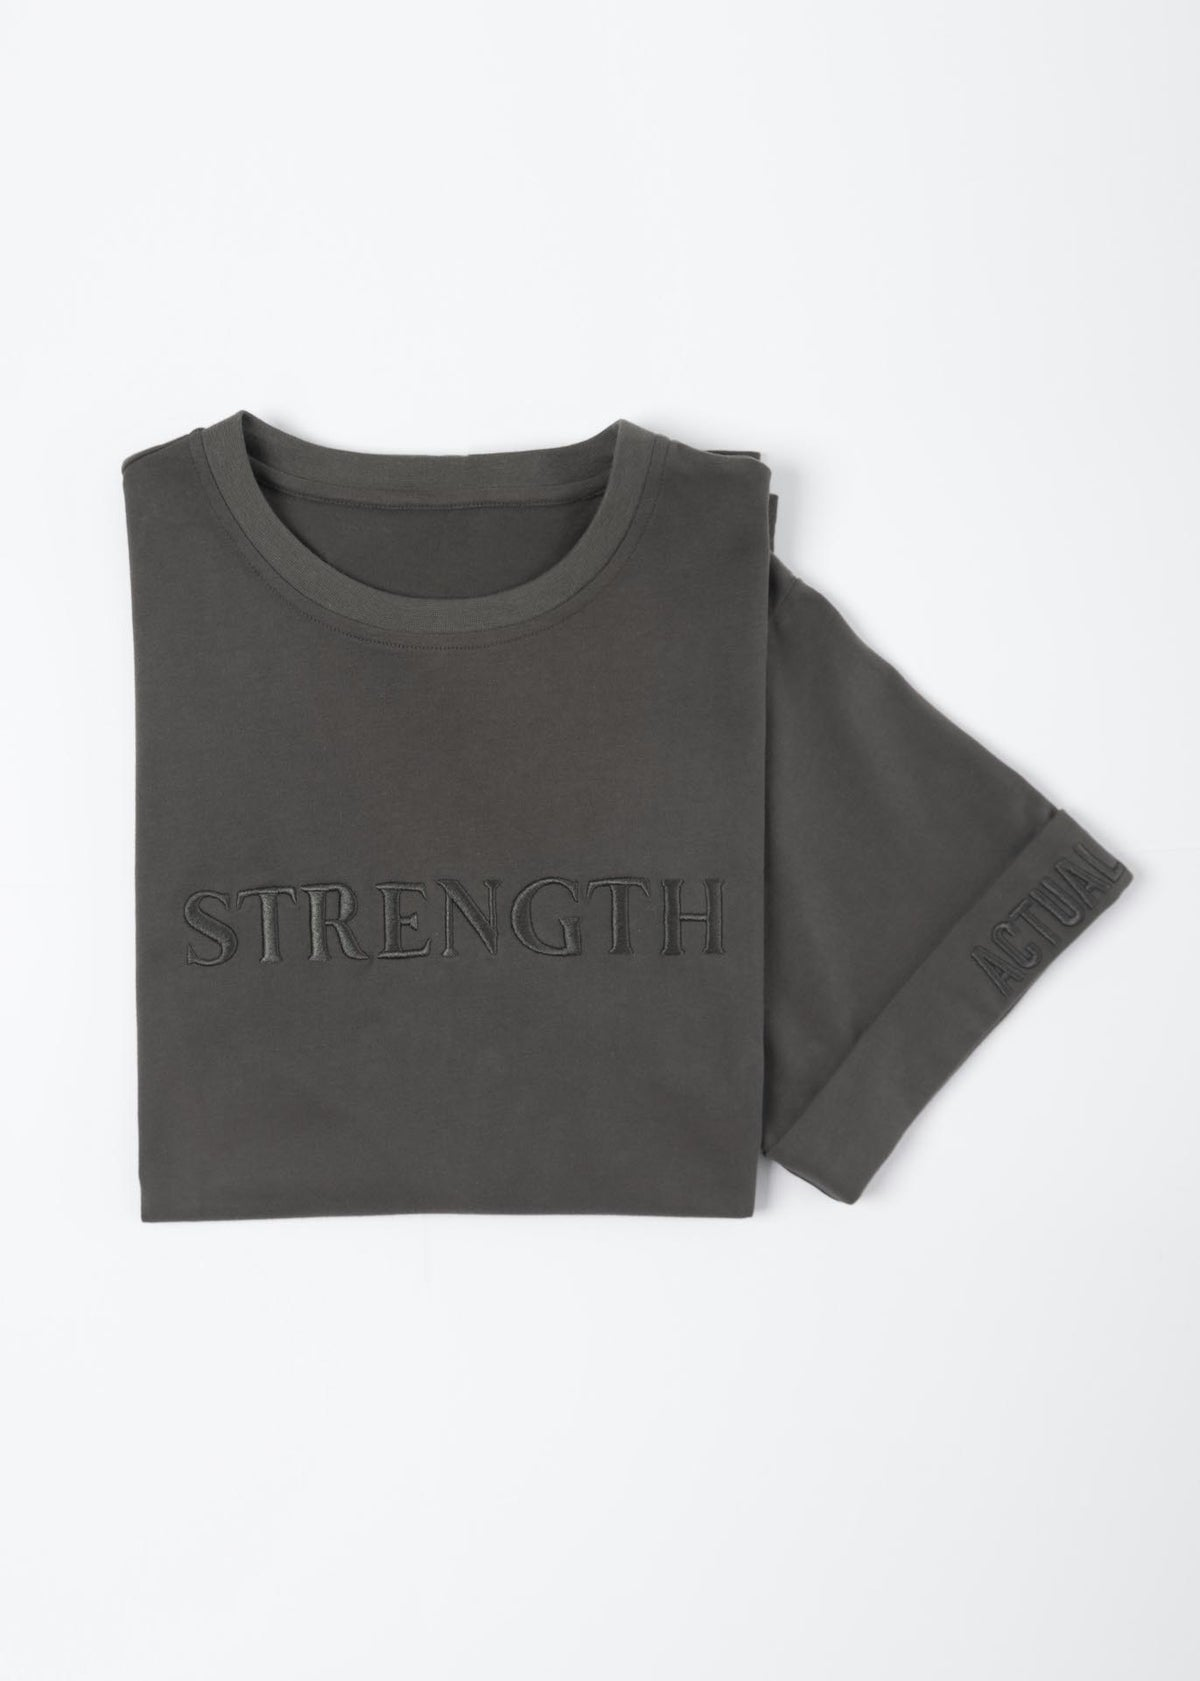 Strength Embroidered T-Shirt